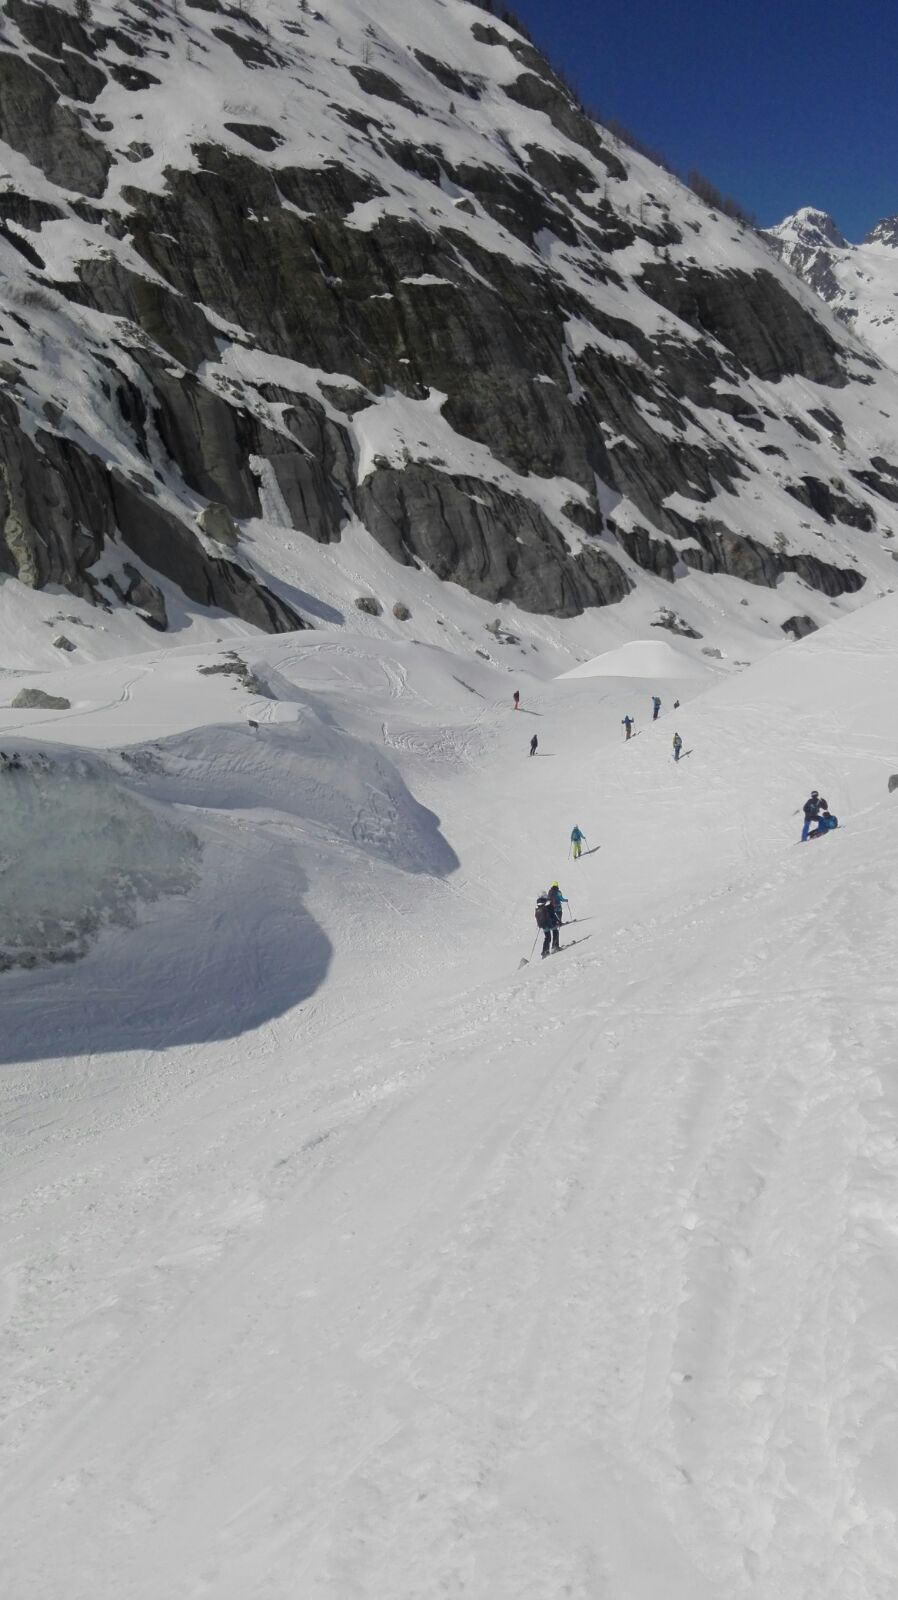 vallee blanche guide alpine proup (48)